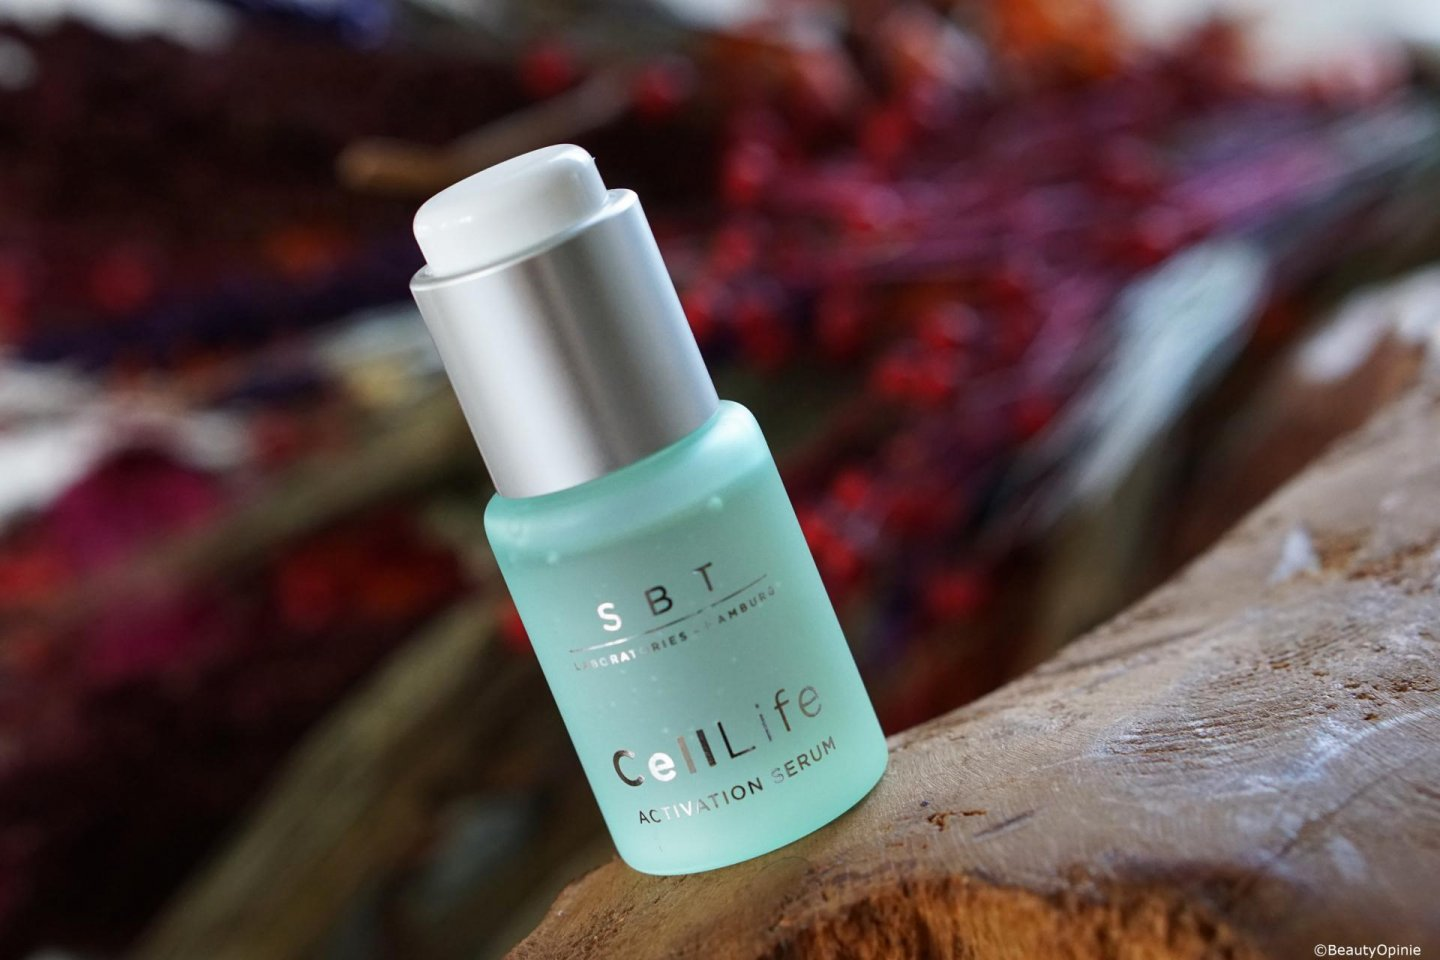 SBT Cellife serum review